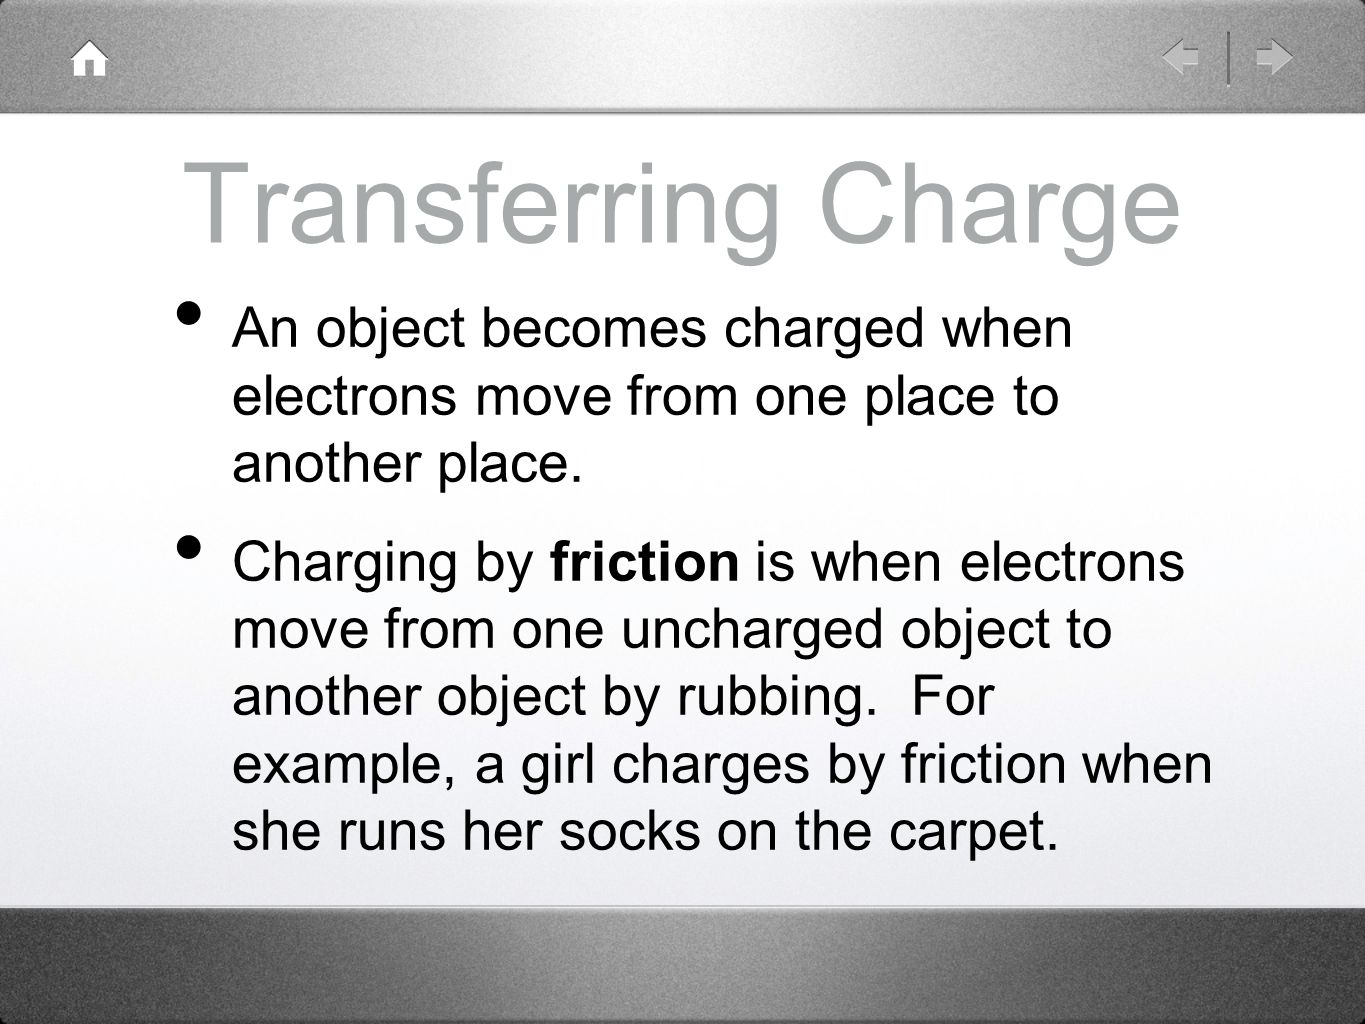 Transferring Charge An object becomes charged when electrons move from one place to another place.